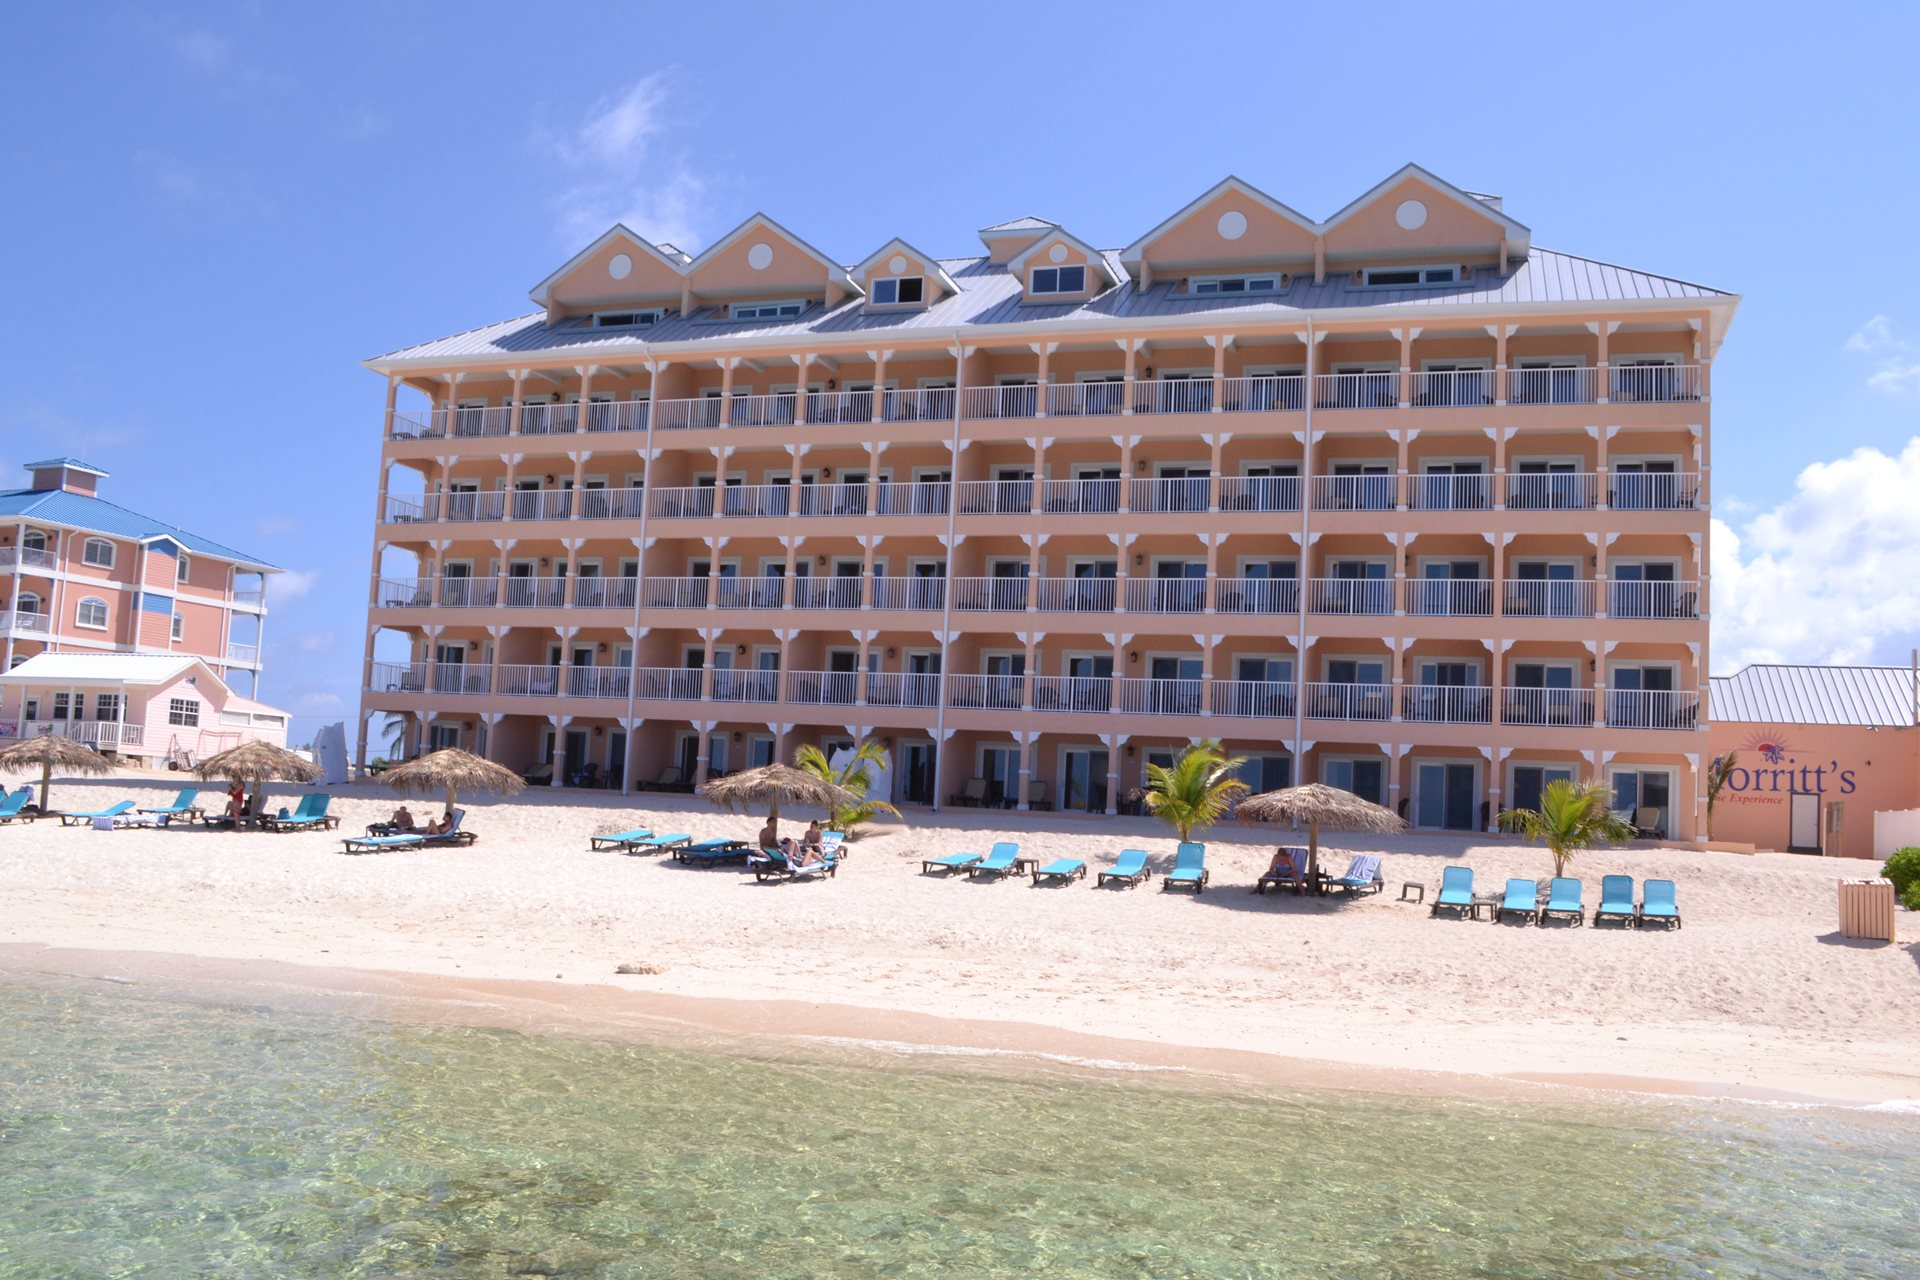 The premier vacation ownership destination in the Cayman Islands is Morritt's resort.